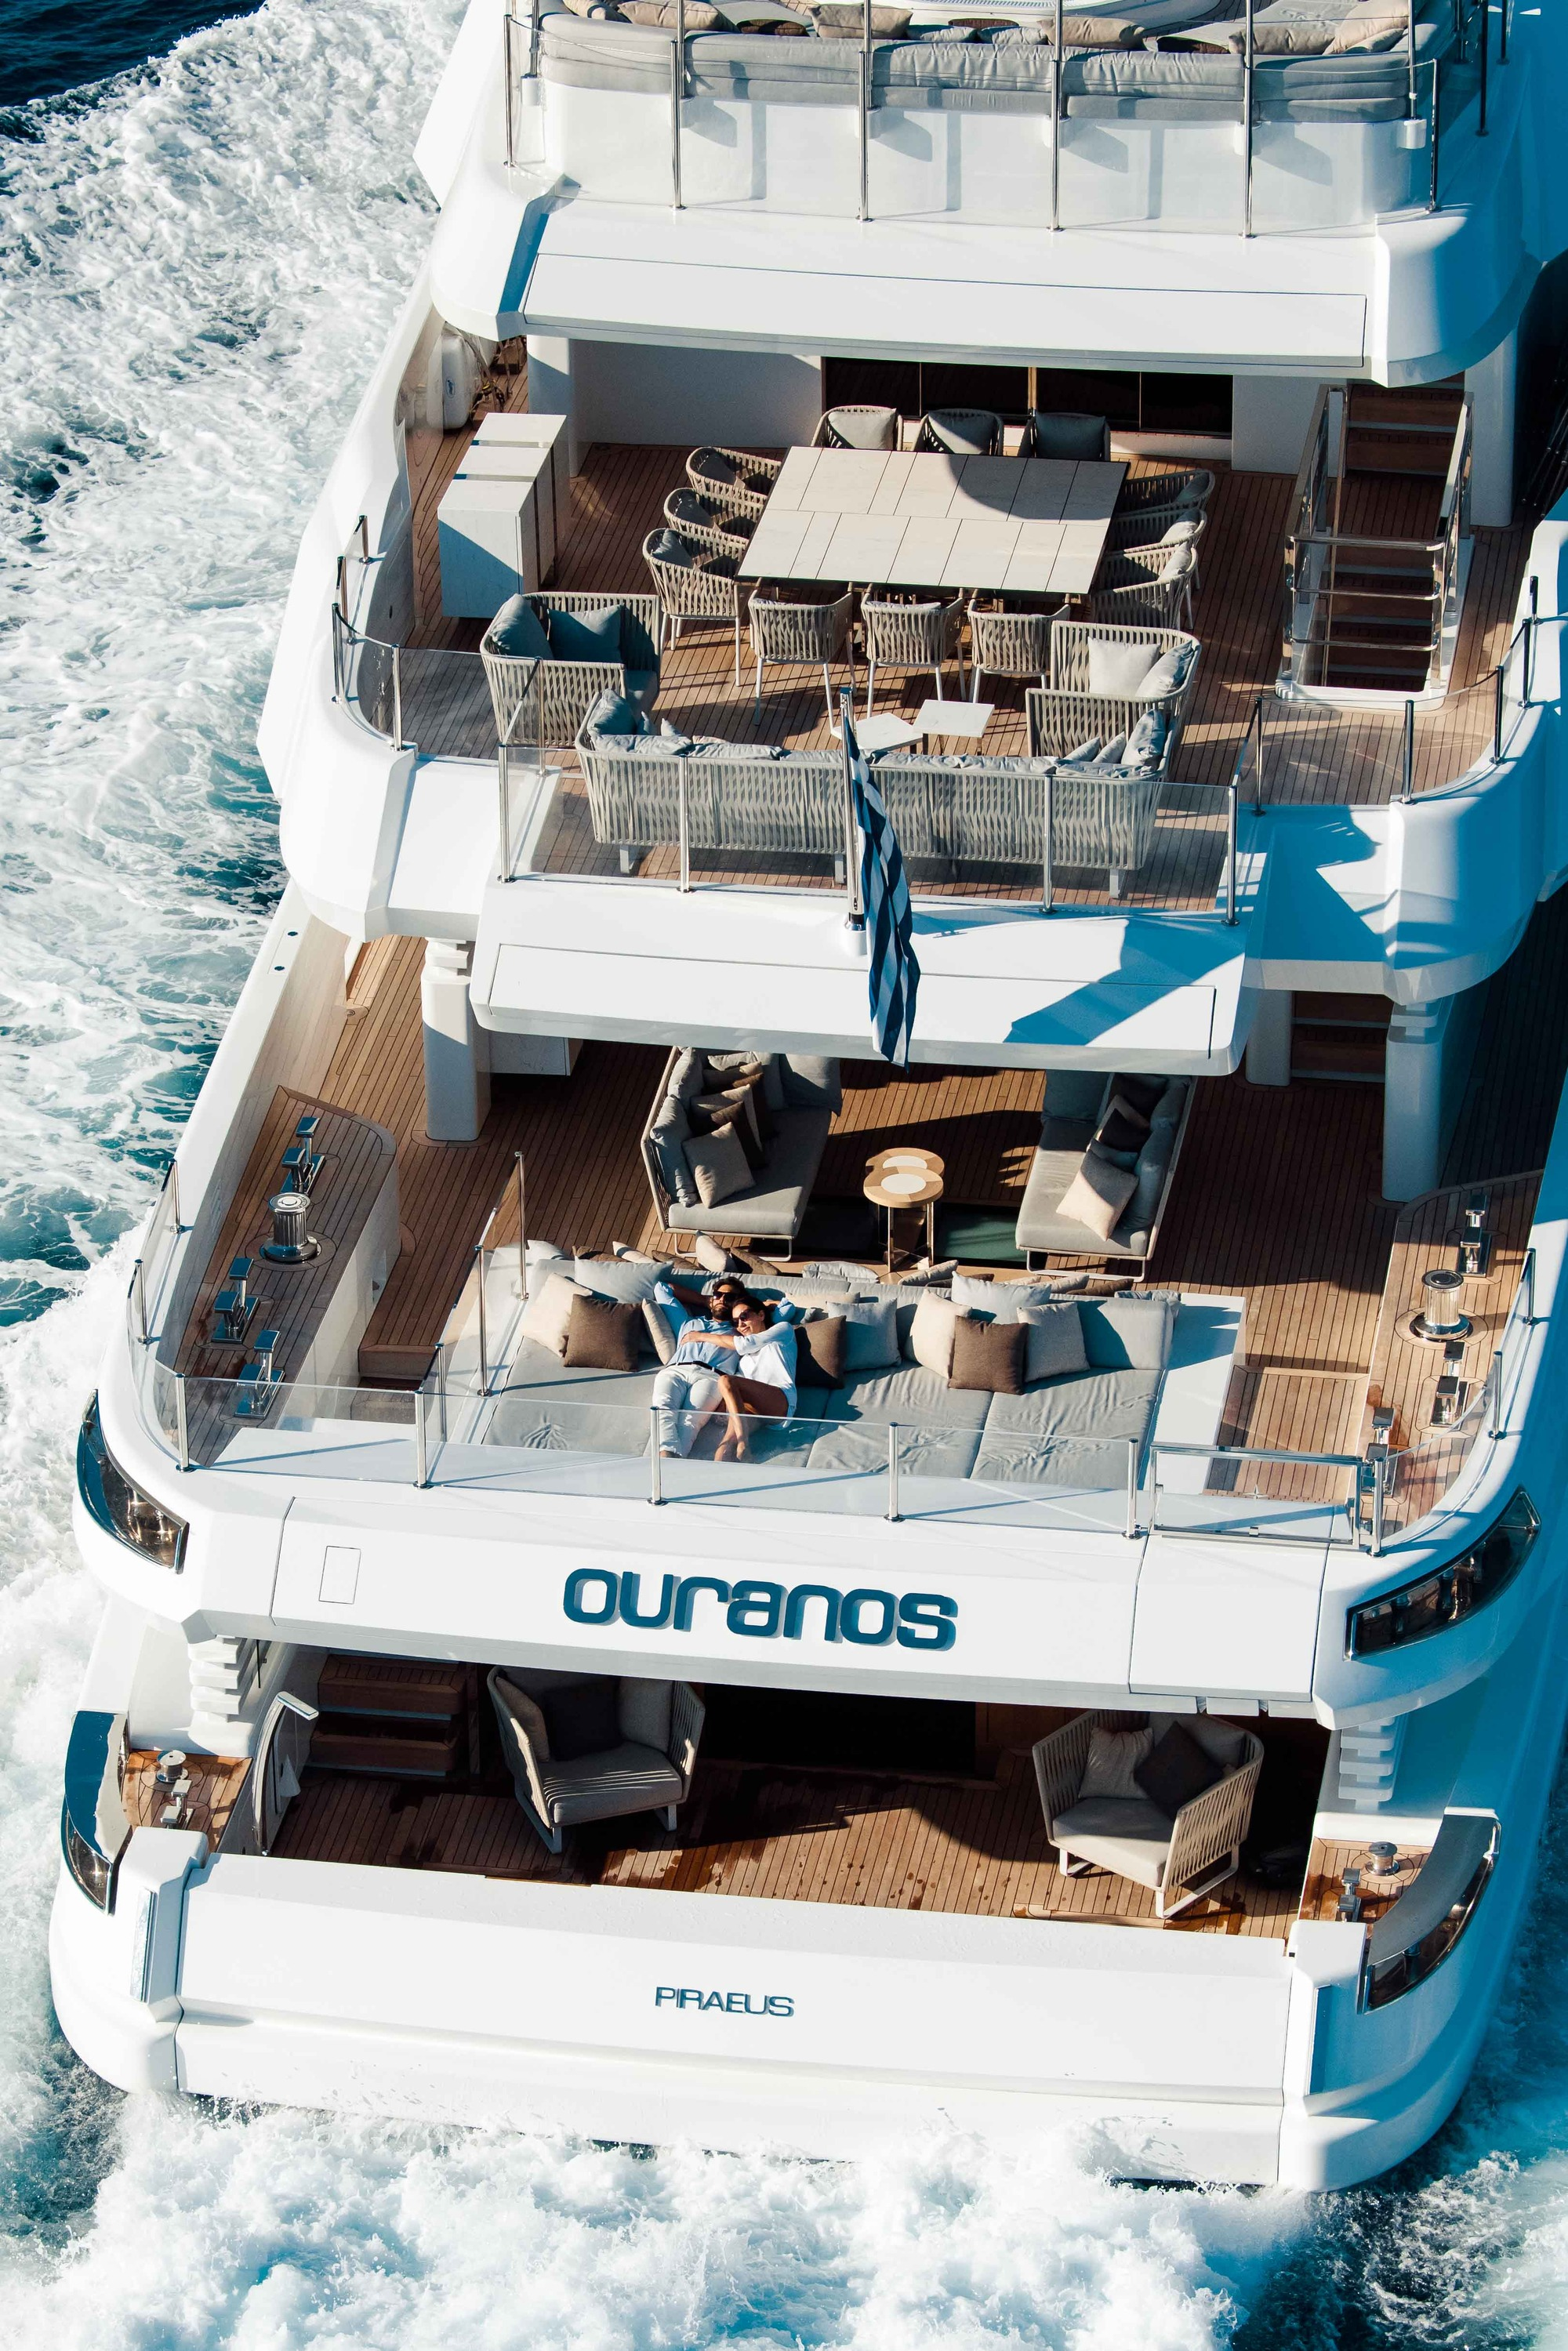 Motor Yacht OURANOS Aft Deck By Admiral Yachts